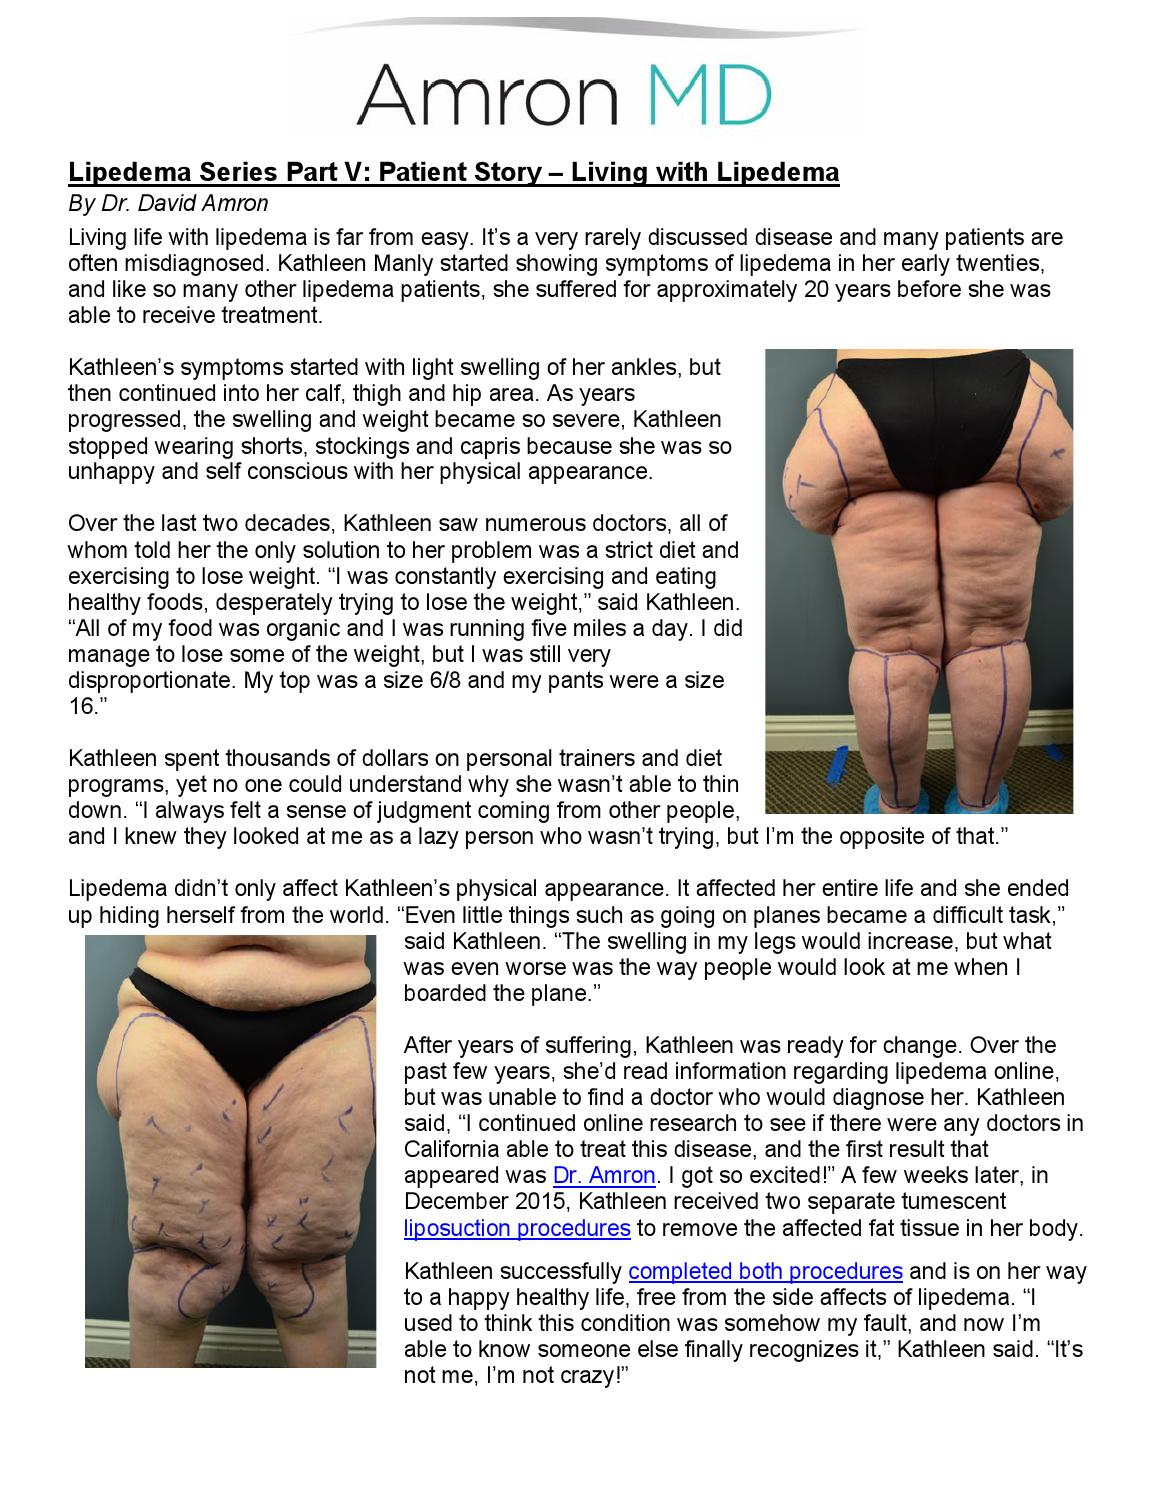 Lipedema Series Part V: Patient Story - Living with Lipedema by Dr